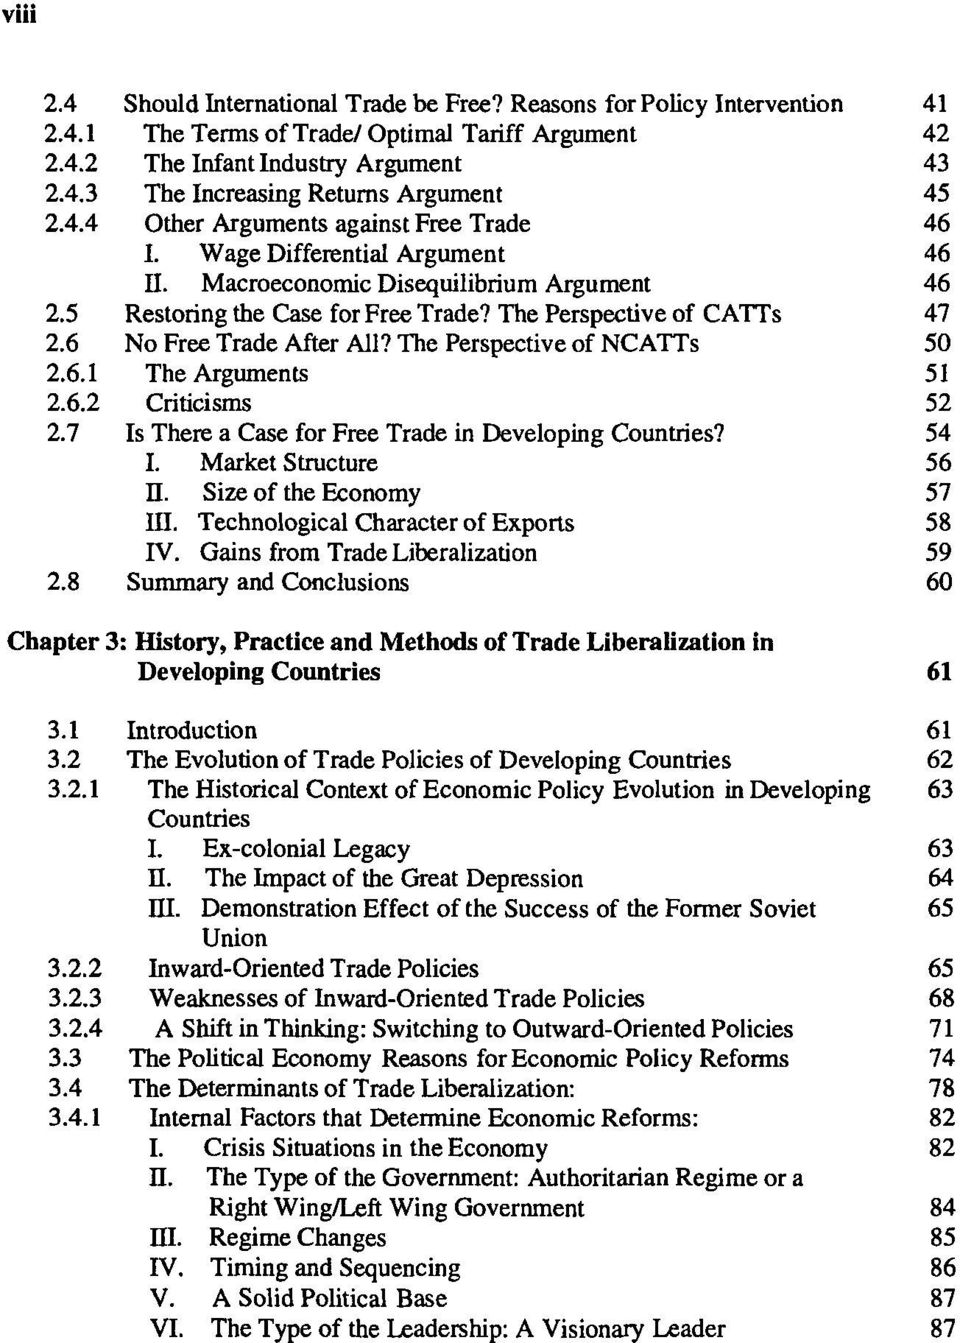 6 No Free Trade After All? The Perspective of NCATTs 50 2.6.1 The Arguments 51 2.6.2 Criticisms 52 2.7 Is There a Case for Free Trade in Developing Countries? 54 I. Market Structure 56 II.